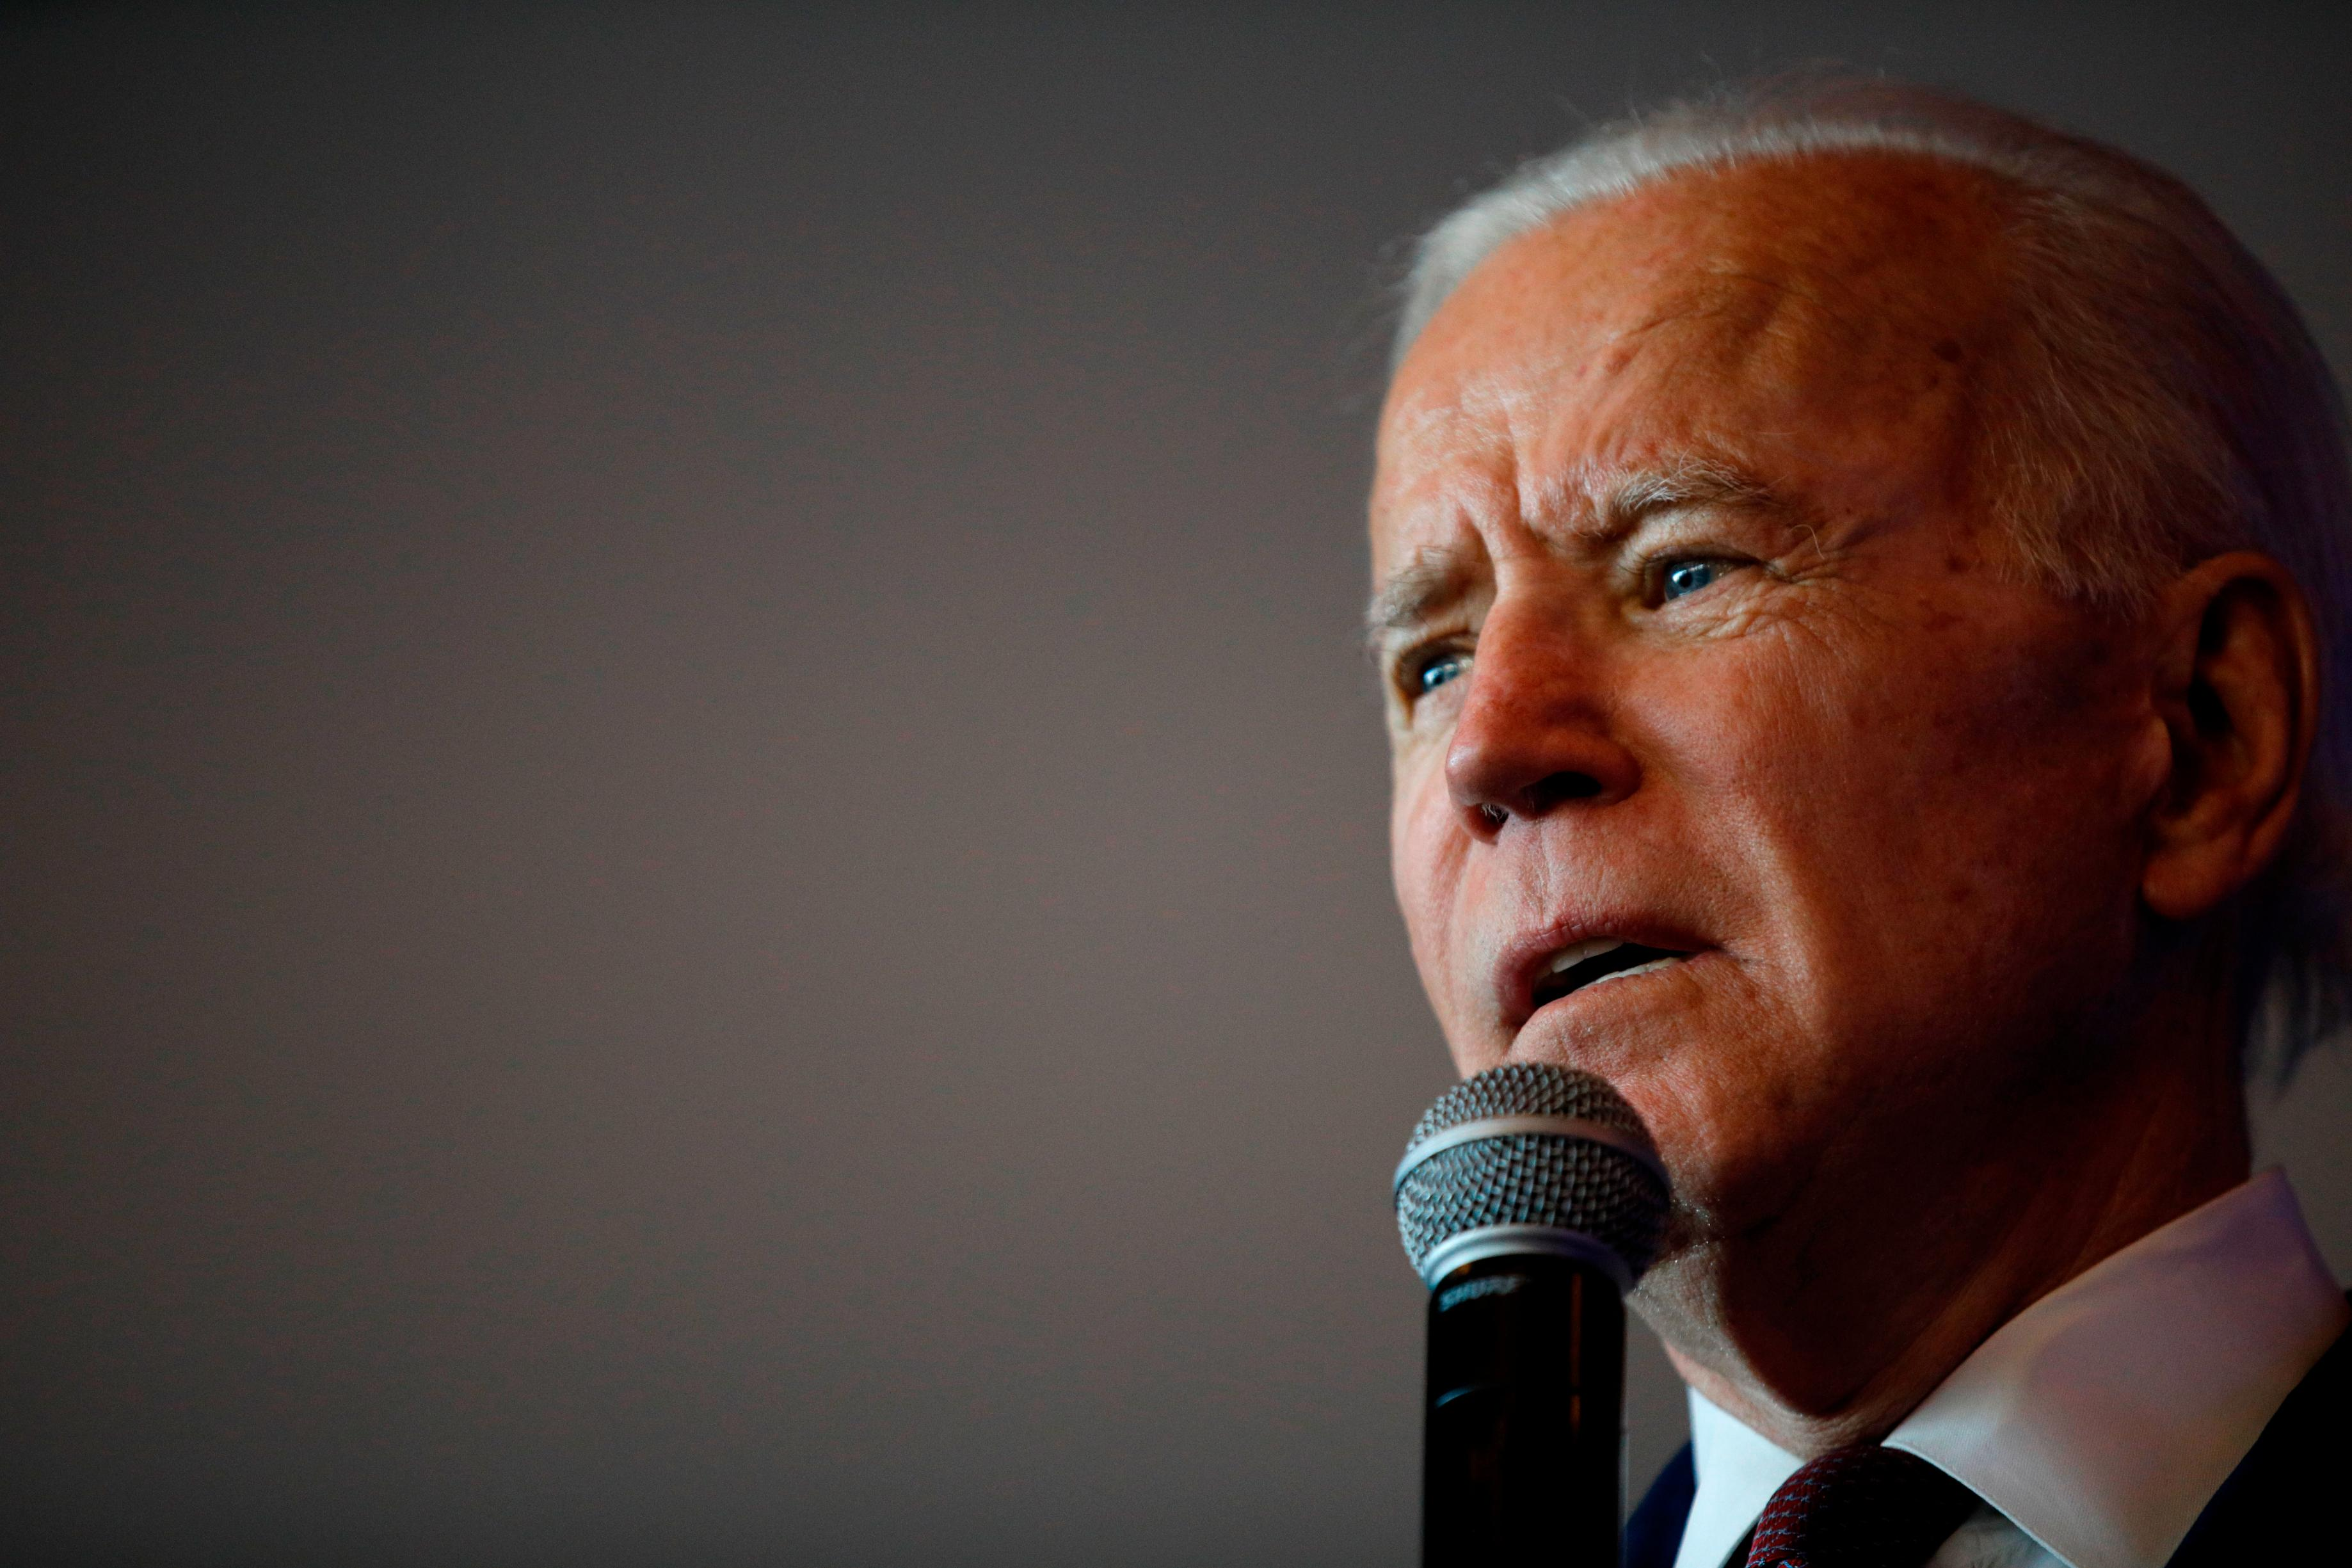 Biden shares story of faith with pastor who lost wife in 2015 Charleston shooting